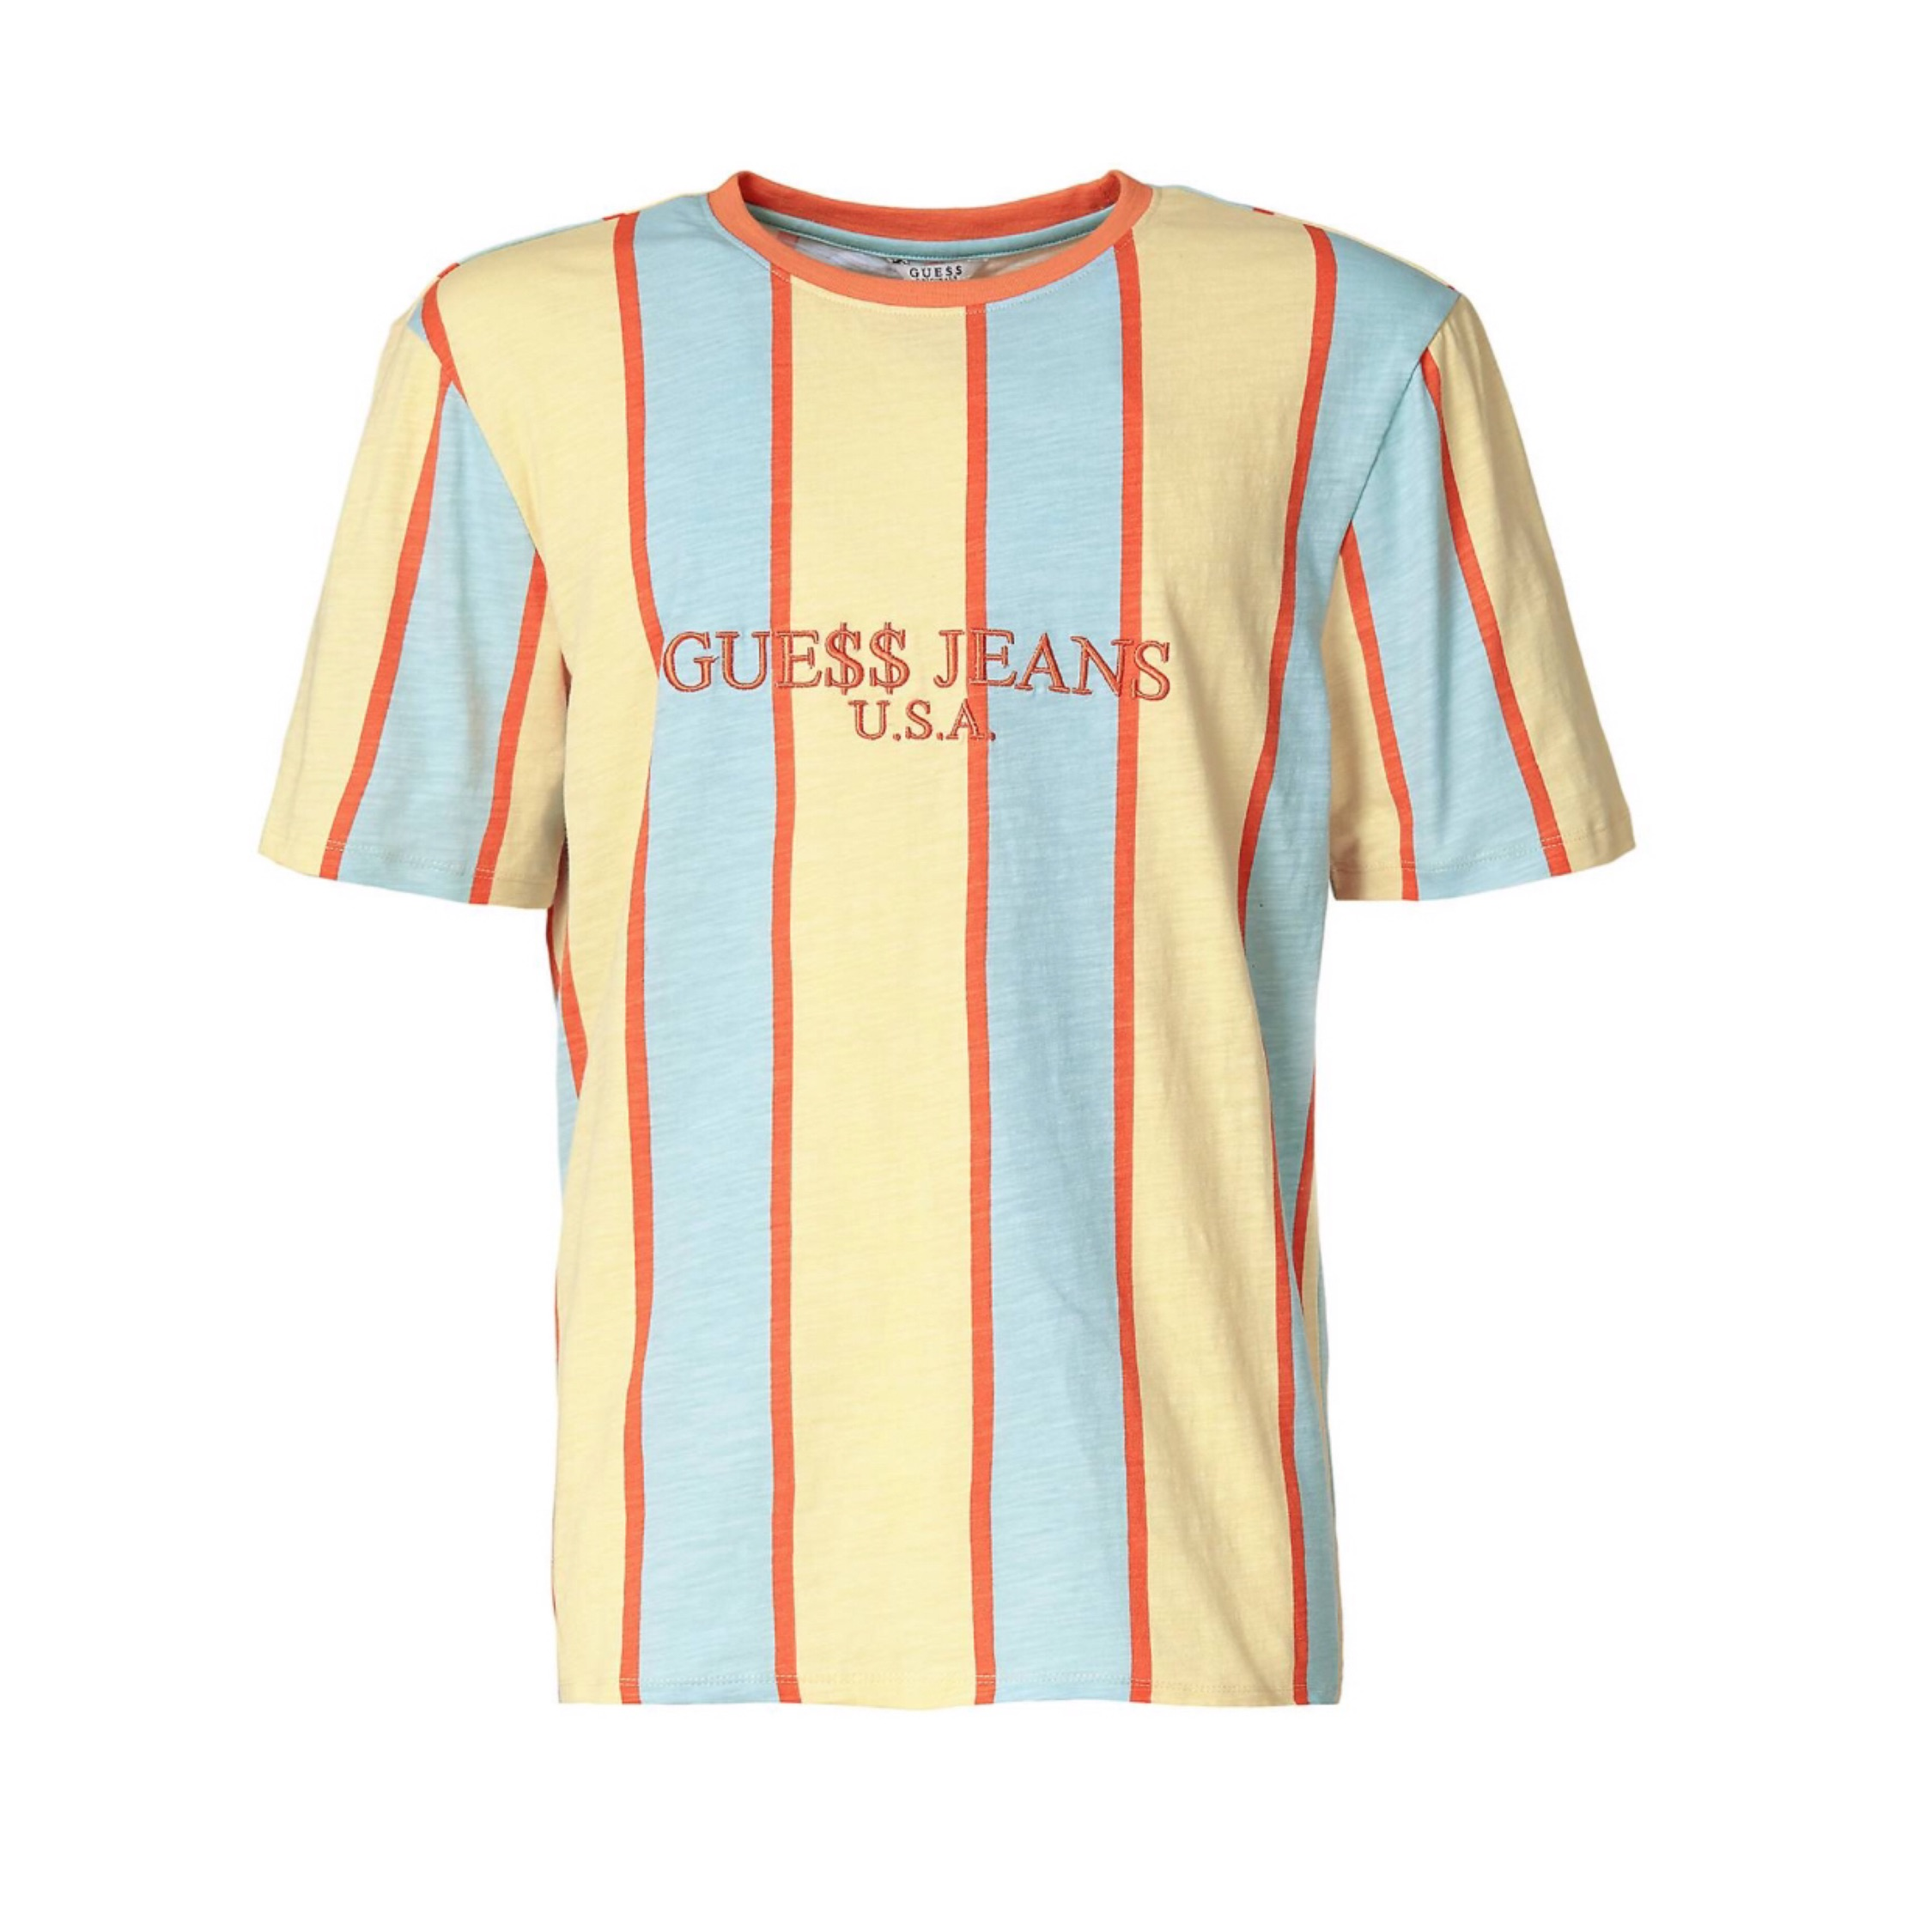 Guess X A$Ap Rocky Usa T-Shirt